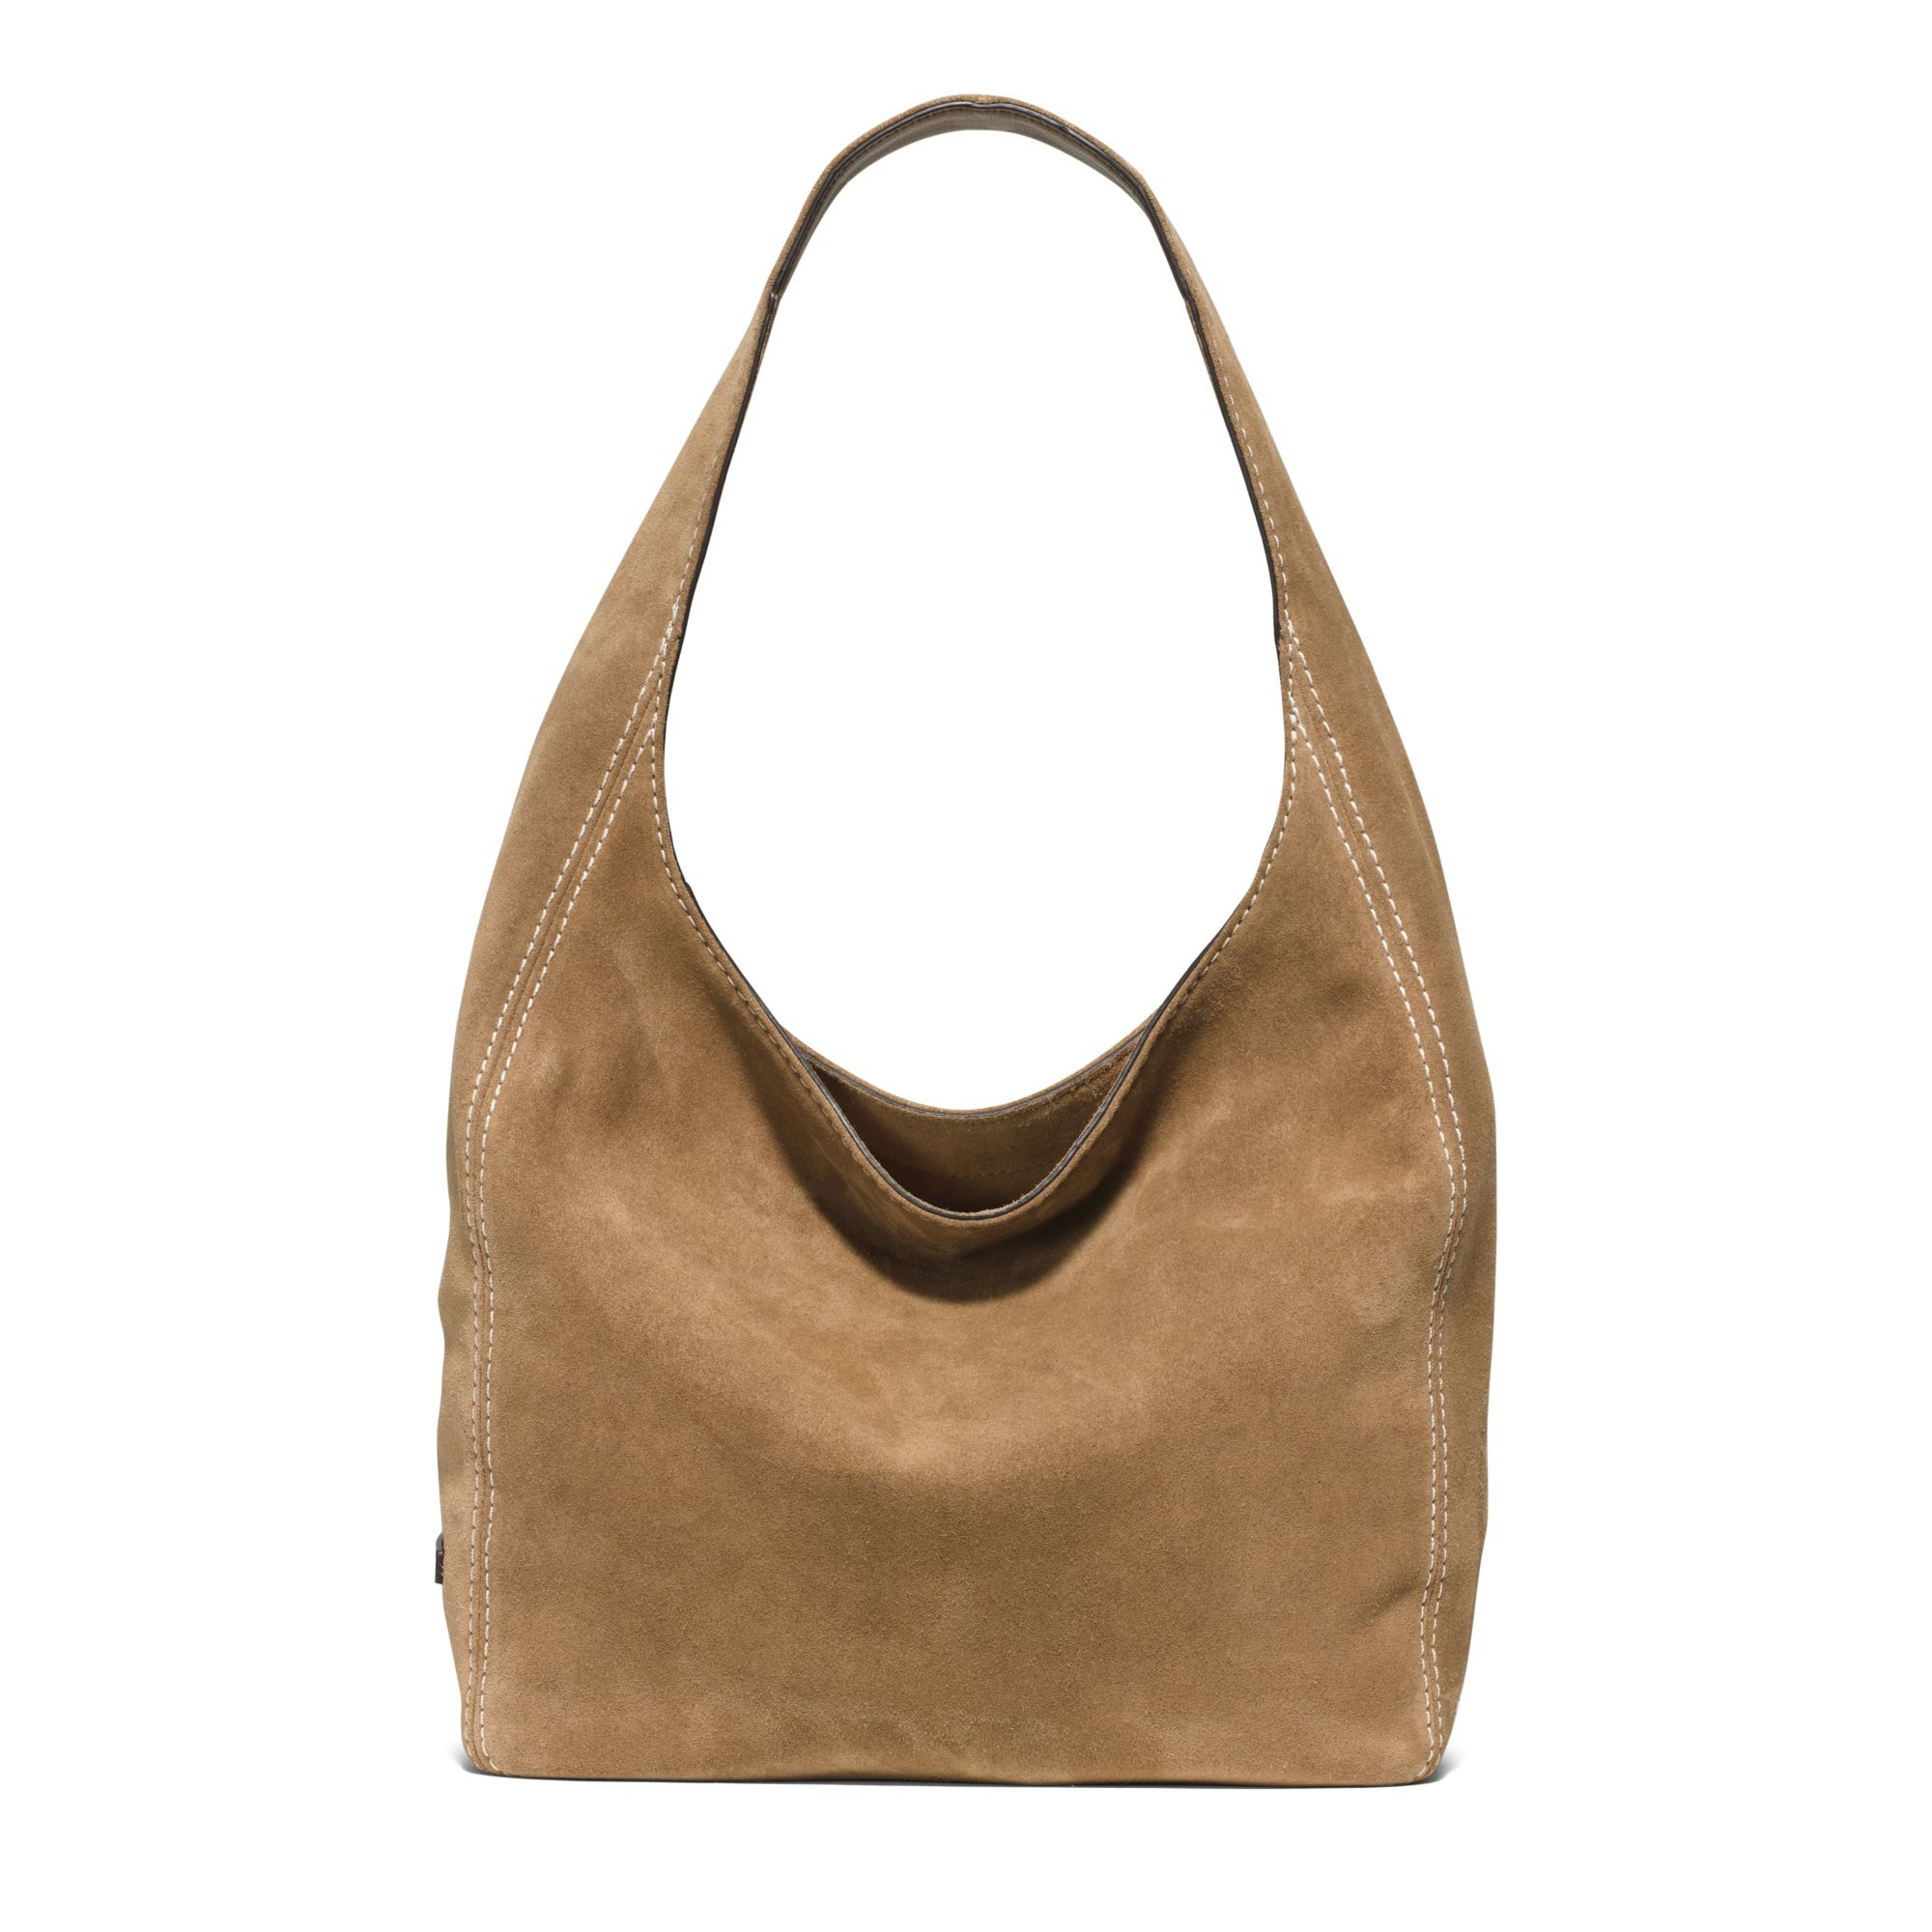 Michael kors Lena Large Suede Shoulder Bag in Brown | Lyst